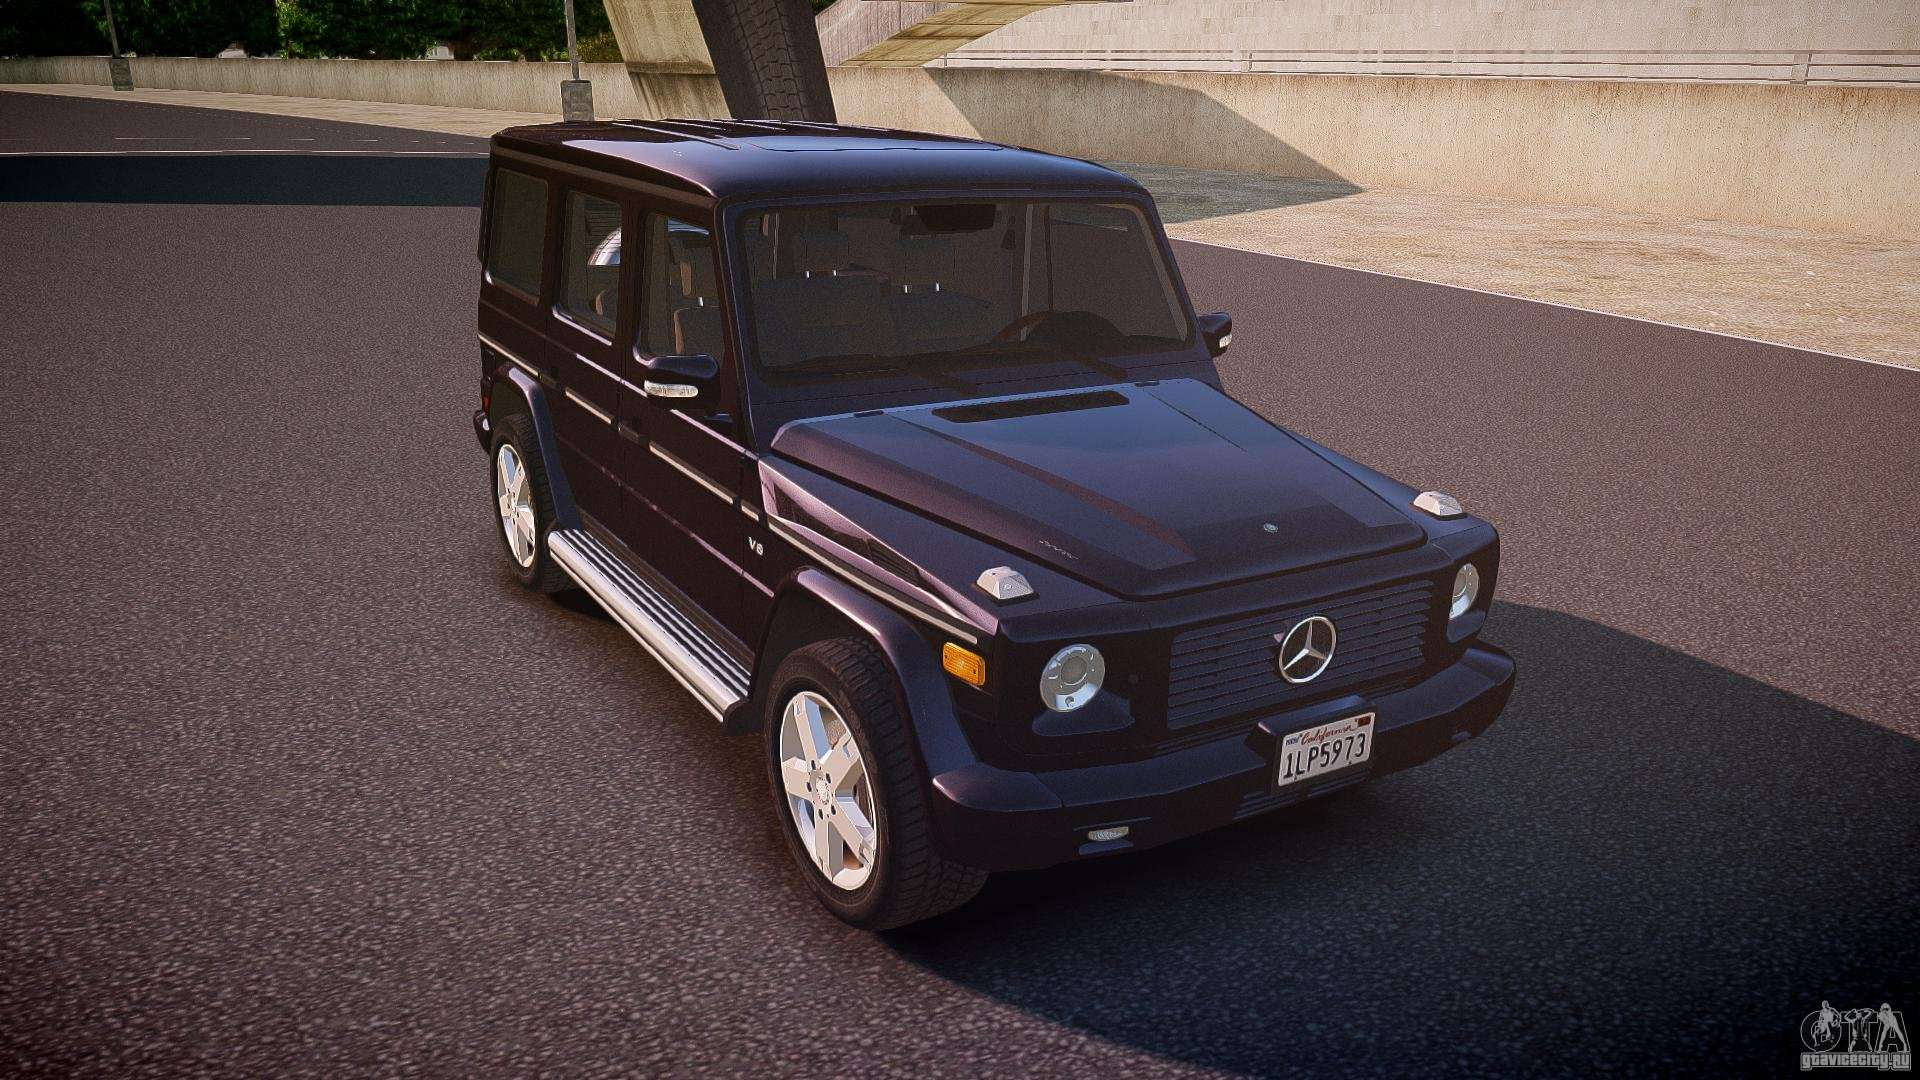 Mercedes benz g500 w463 2008 for gta 4 for Mercedes benz g500